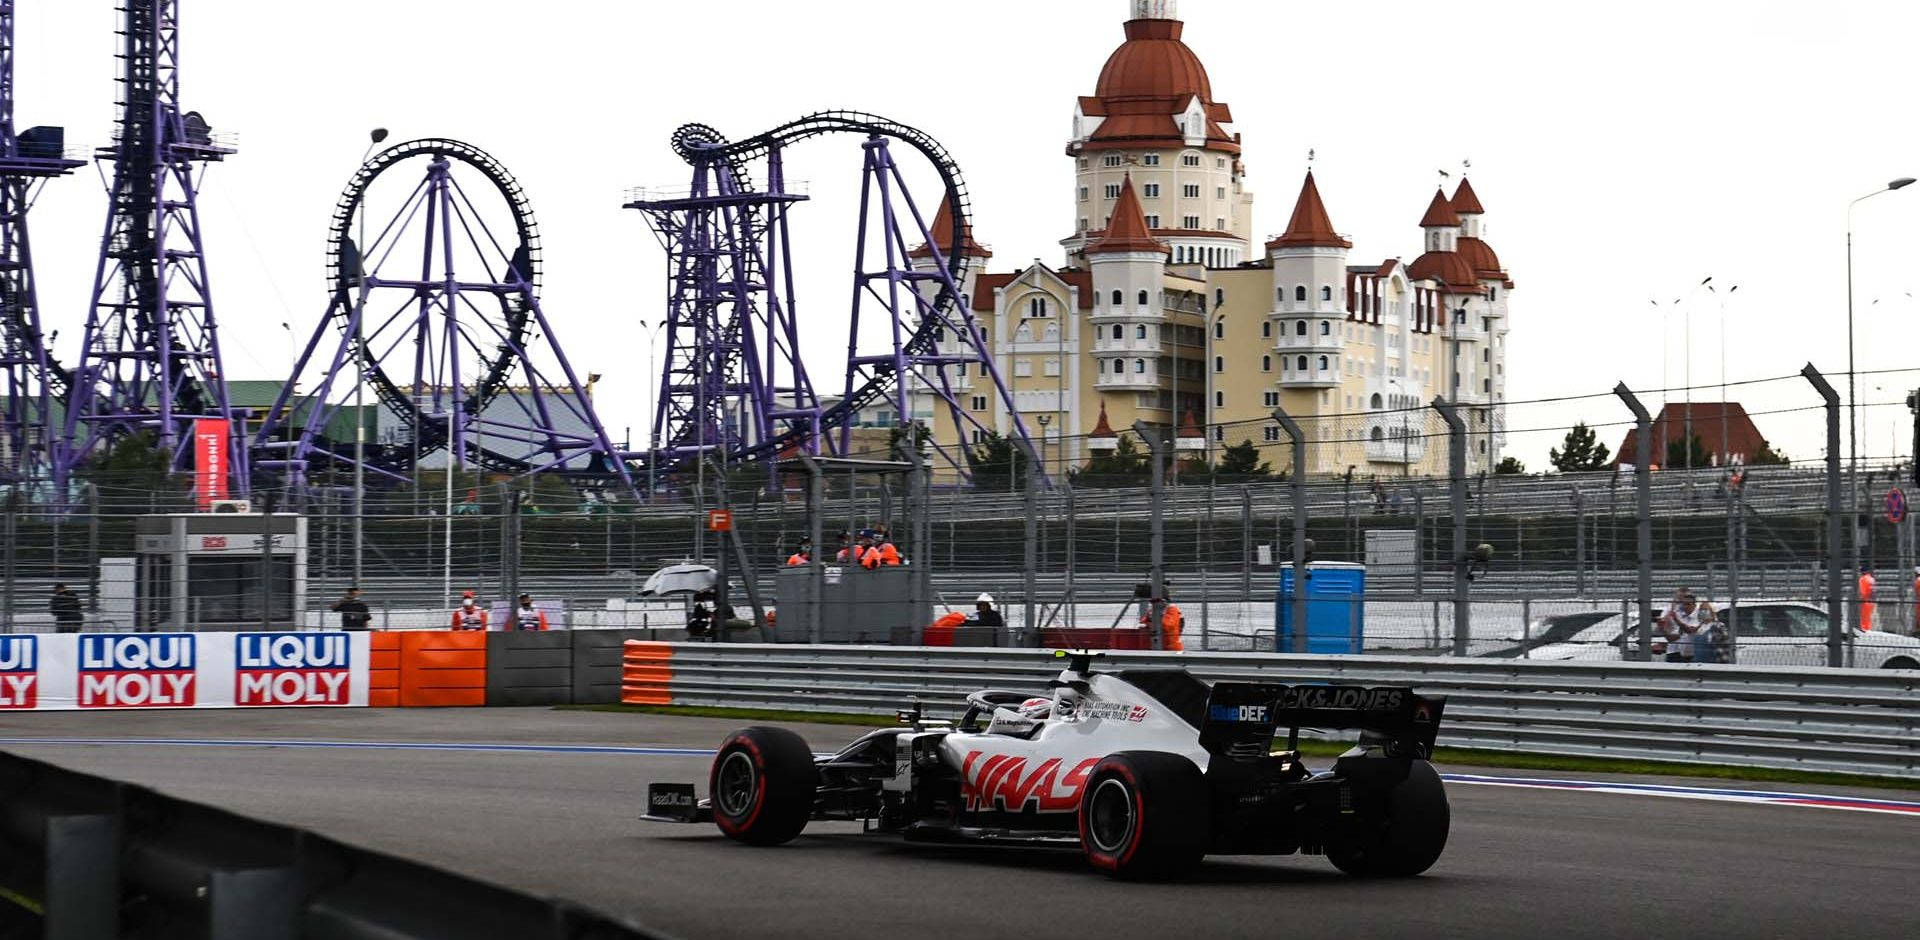 SOCHI AUTODROM, RUSSIAN FEDERATION - SEPTEMBER 26: Kevin Magnussen, Haas VF-20 during the Russian GP at Sochi Autodrom on Saturday September 26, 2020 in Sochi, Russian Federation. (Photo by Mark Sutton / LAT Images)